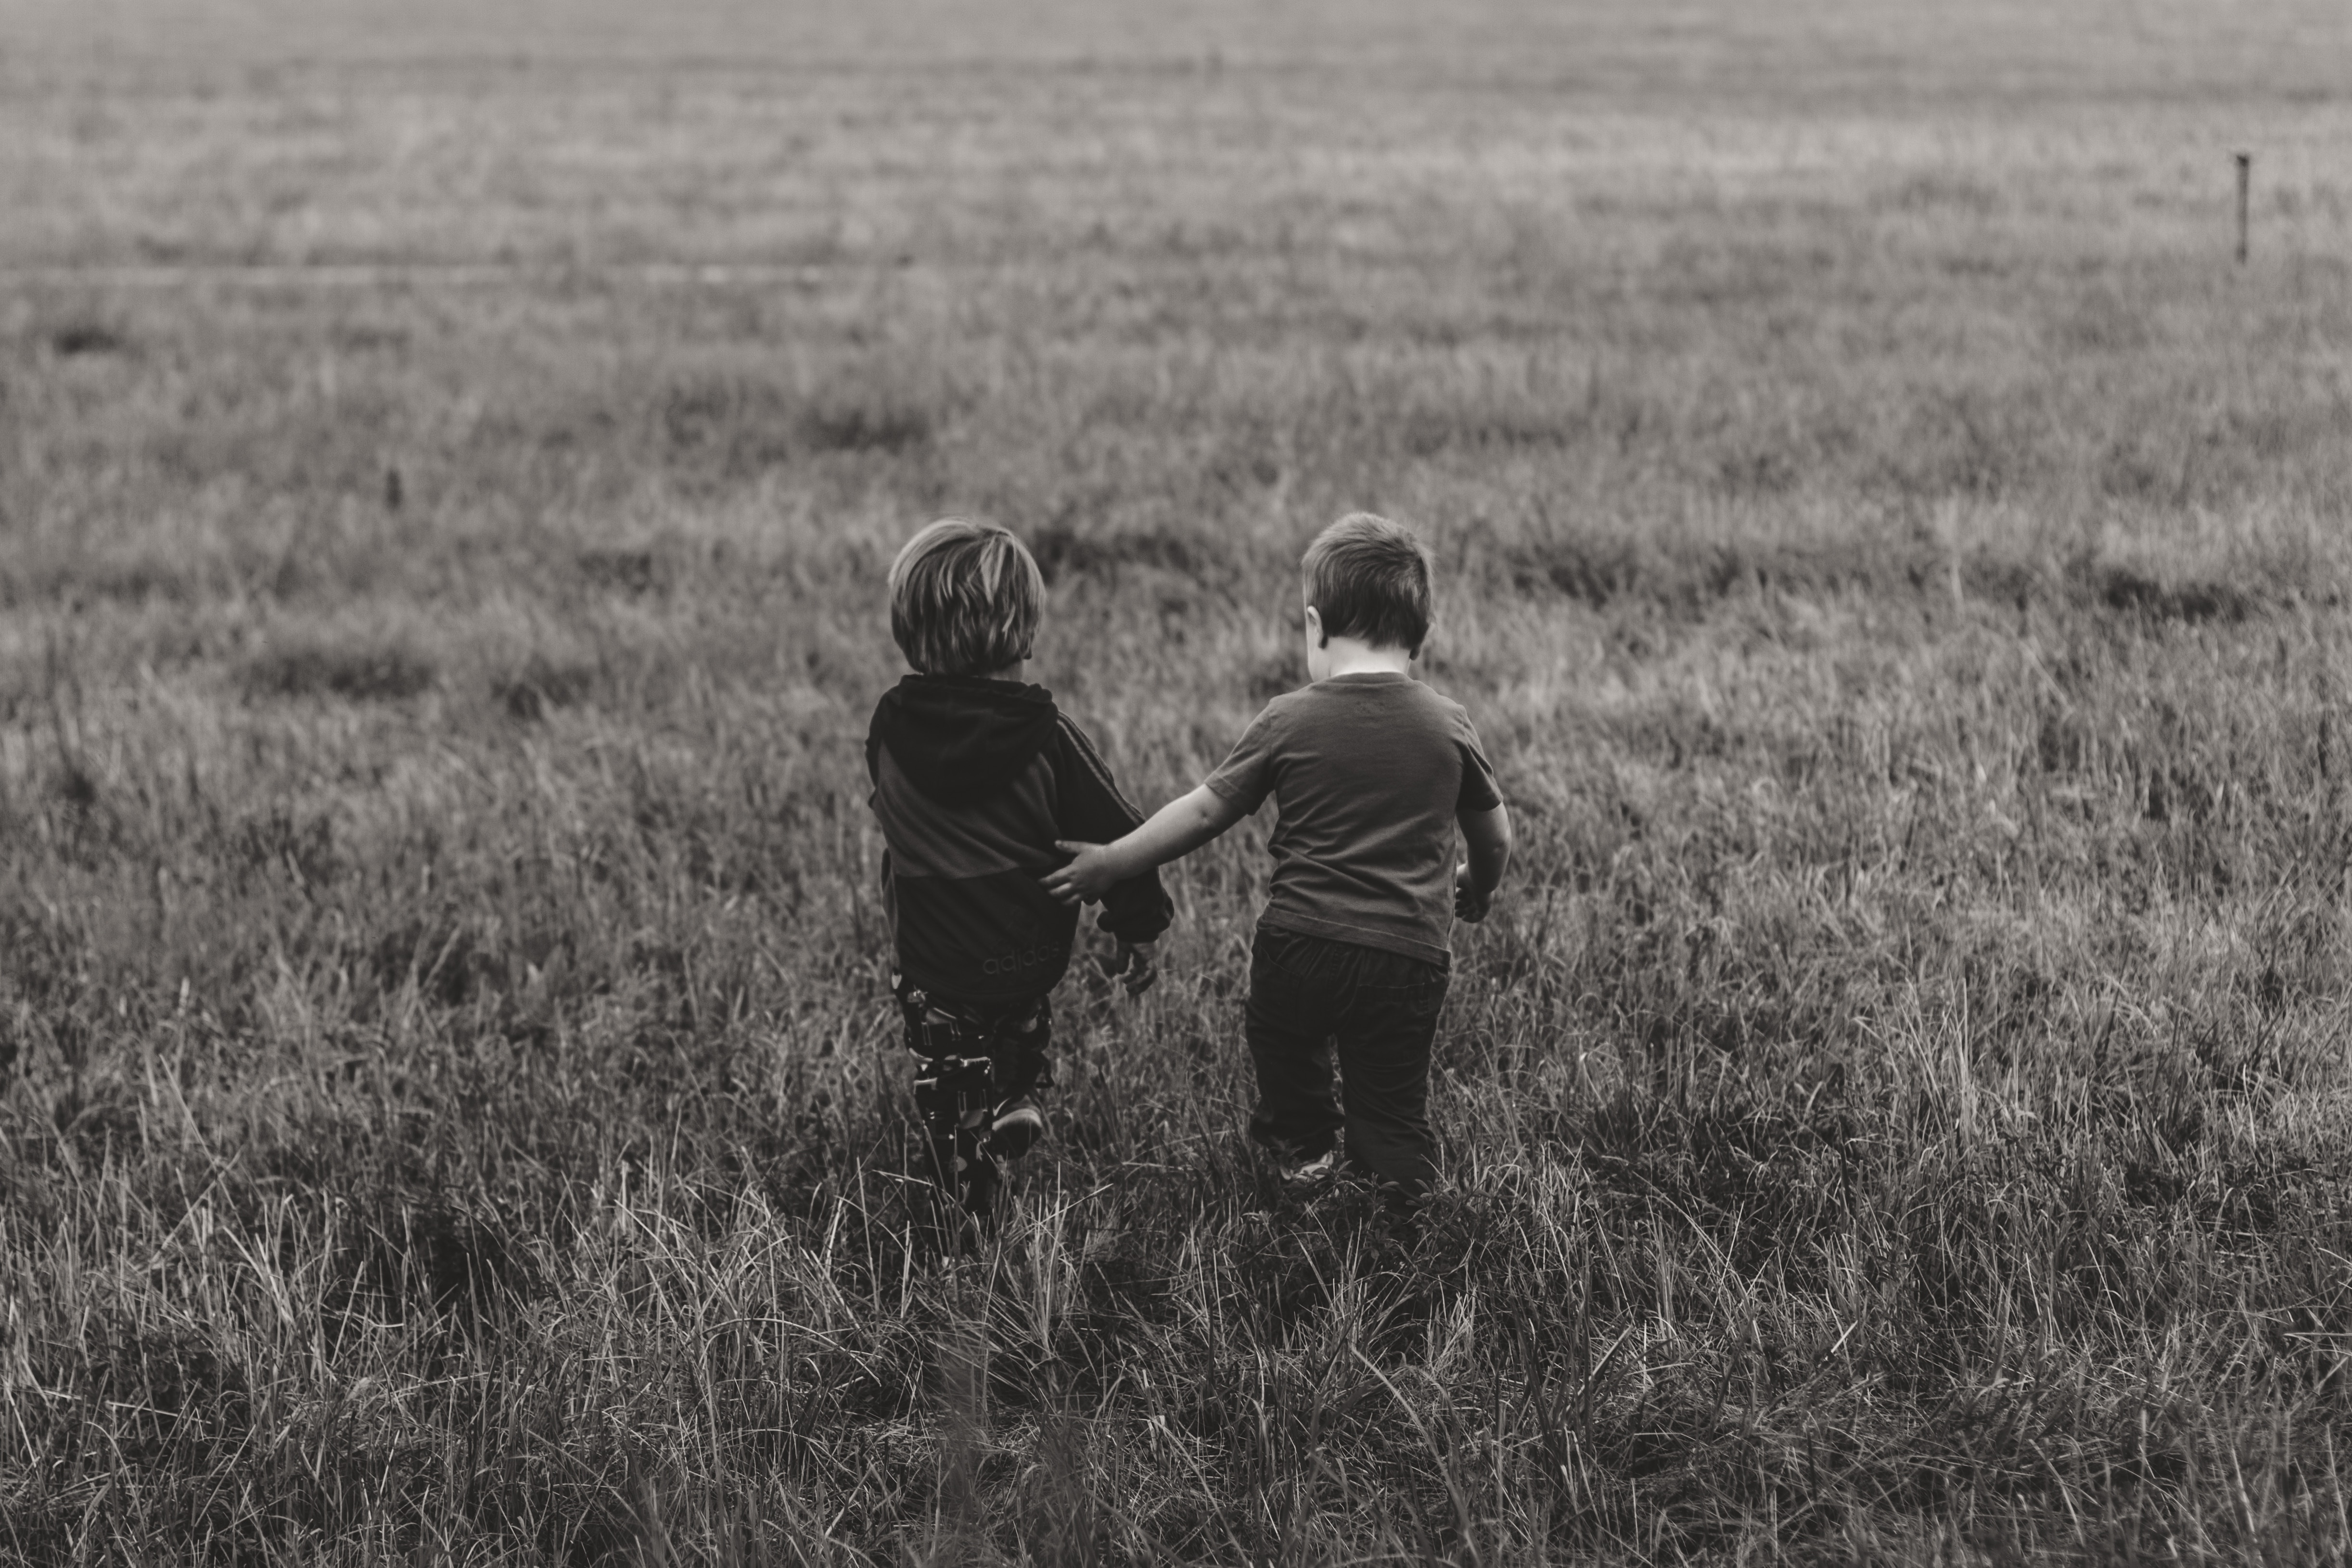 74779 Screensavers and Wallpapers Children for phone. Download Miscellanea, Miscellaneous, Children, Couple, Pair, Field, Stroll, Friendship, Bw, Chb pictures for free